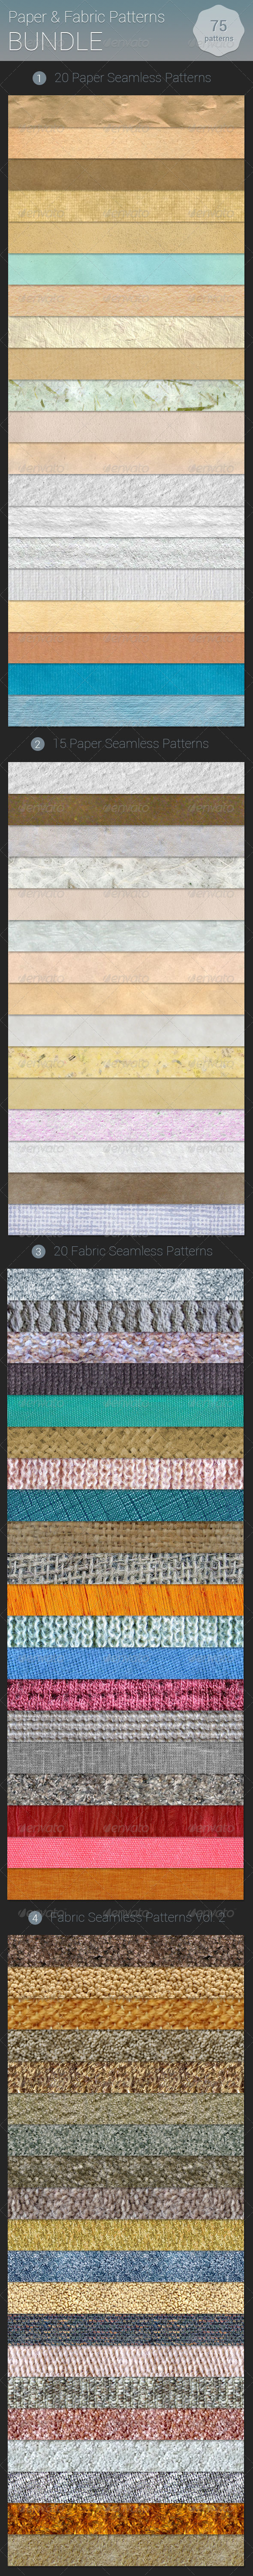 GraphicRiver Paper and Fabric Patterns Bundle 7320142